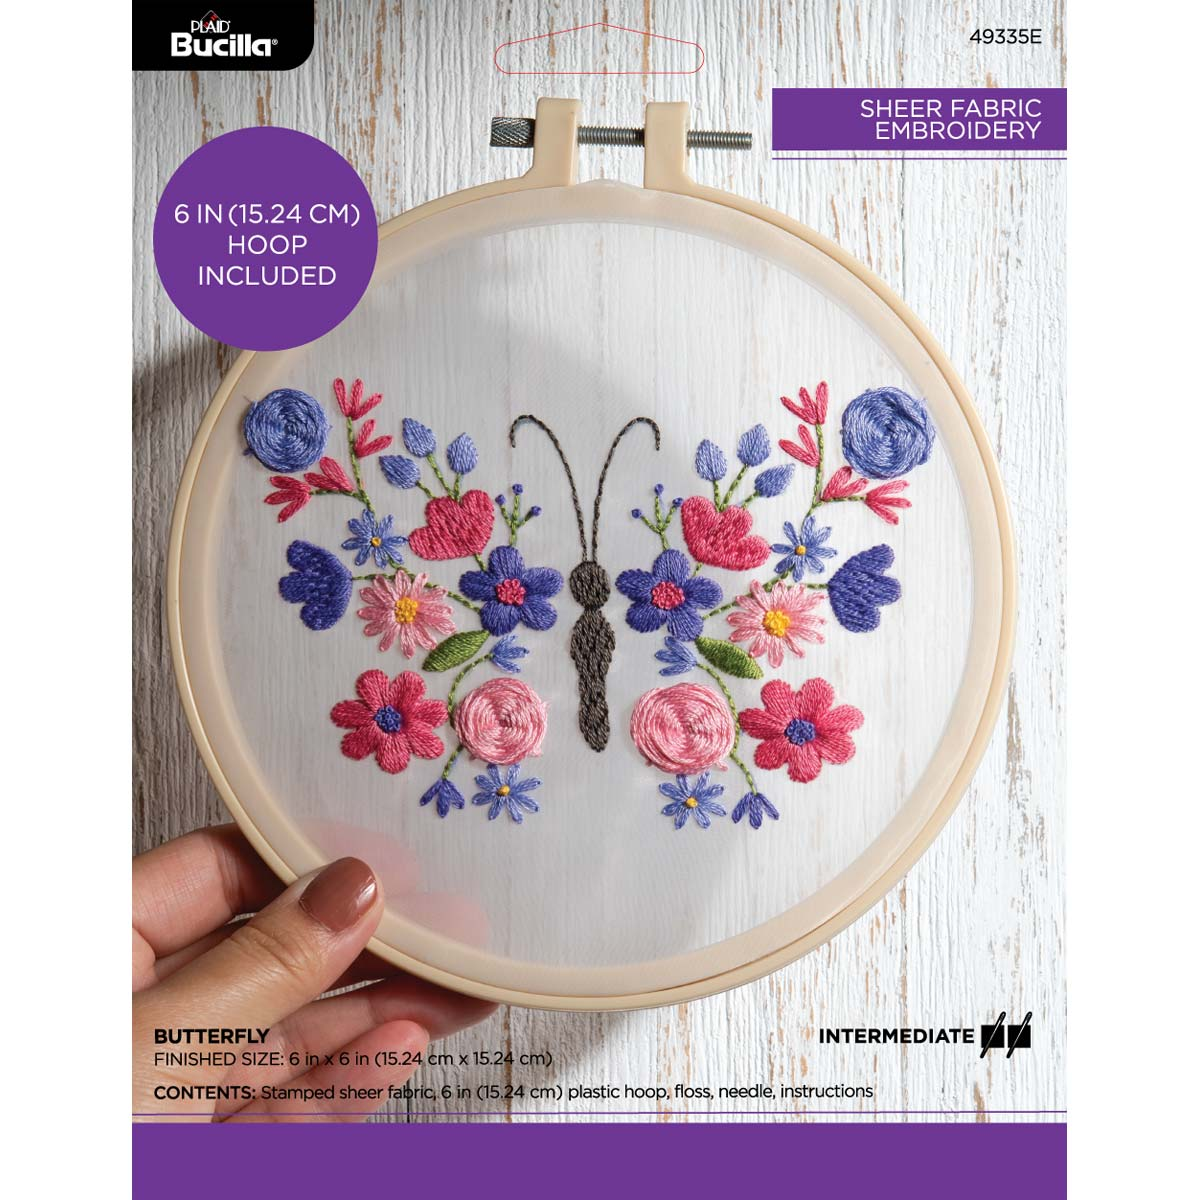 Bucilla ® Stamped Sheer Fabric Embroidery - Butterfly - 49335E